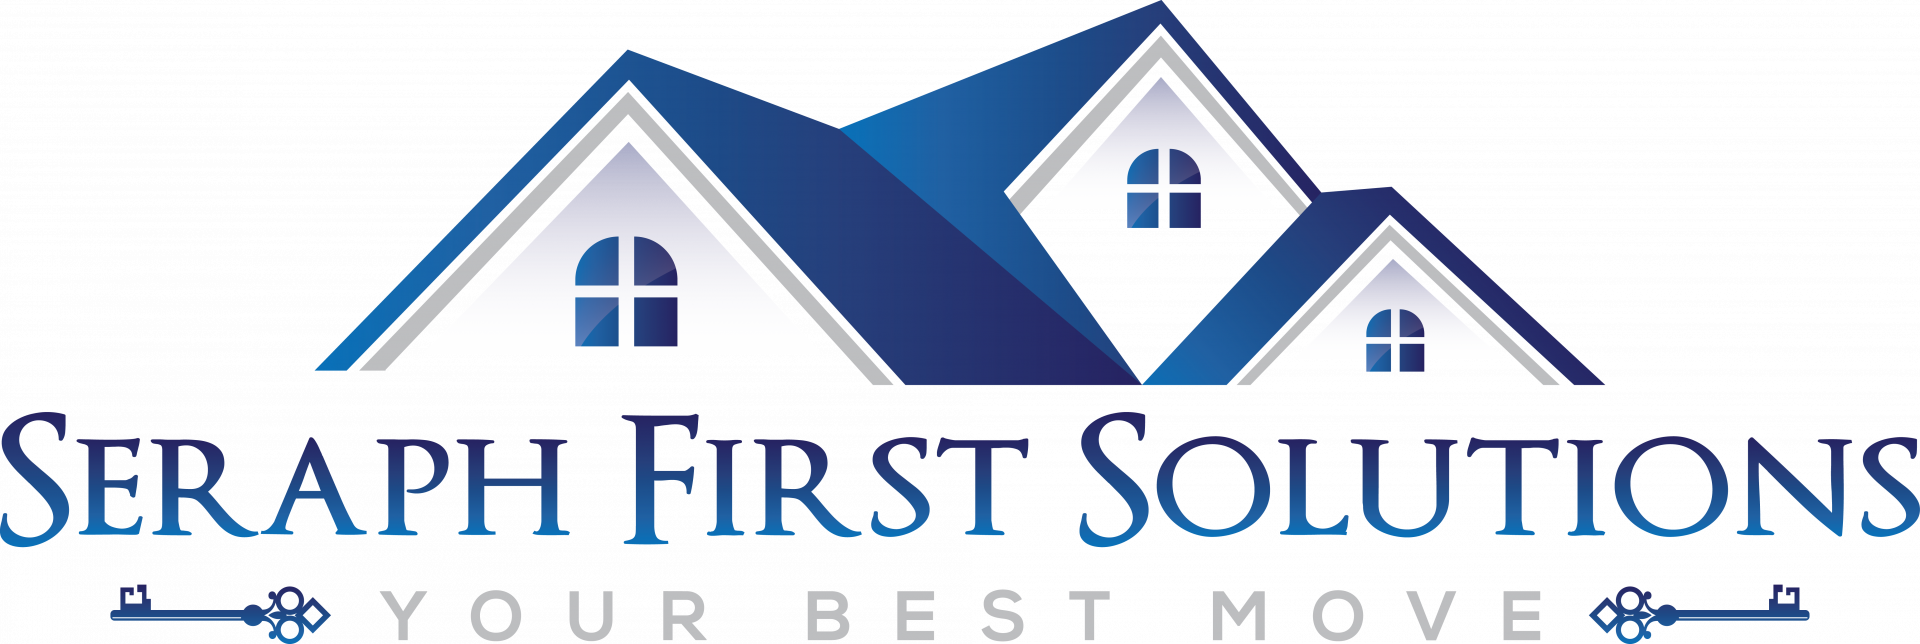 Seraph First Solutions  logo